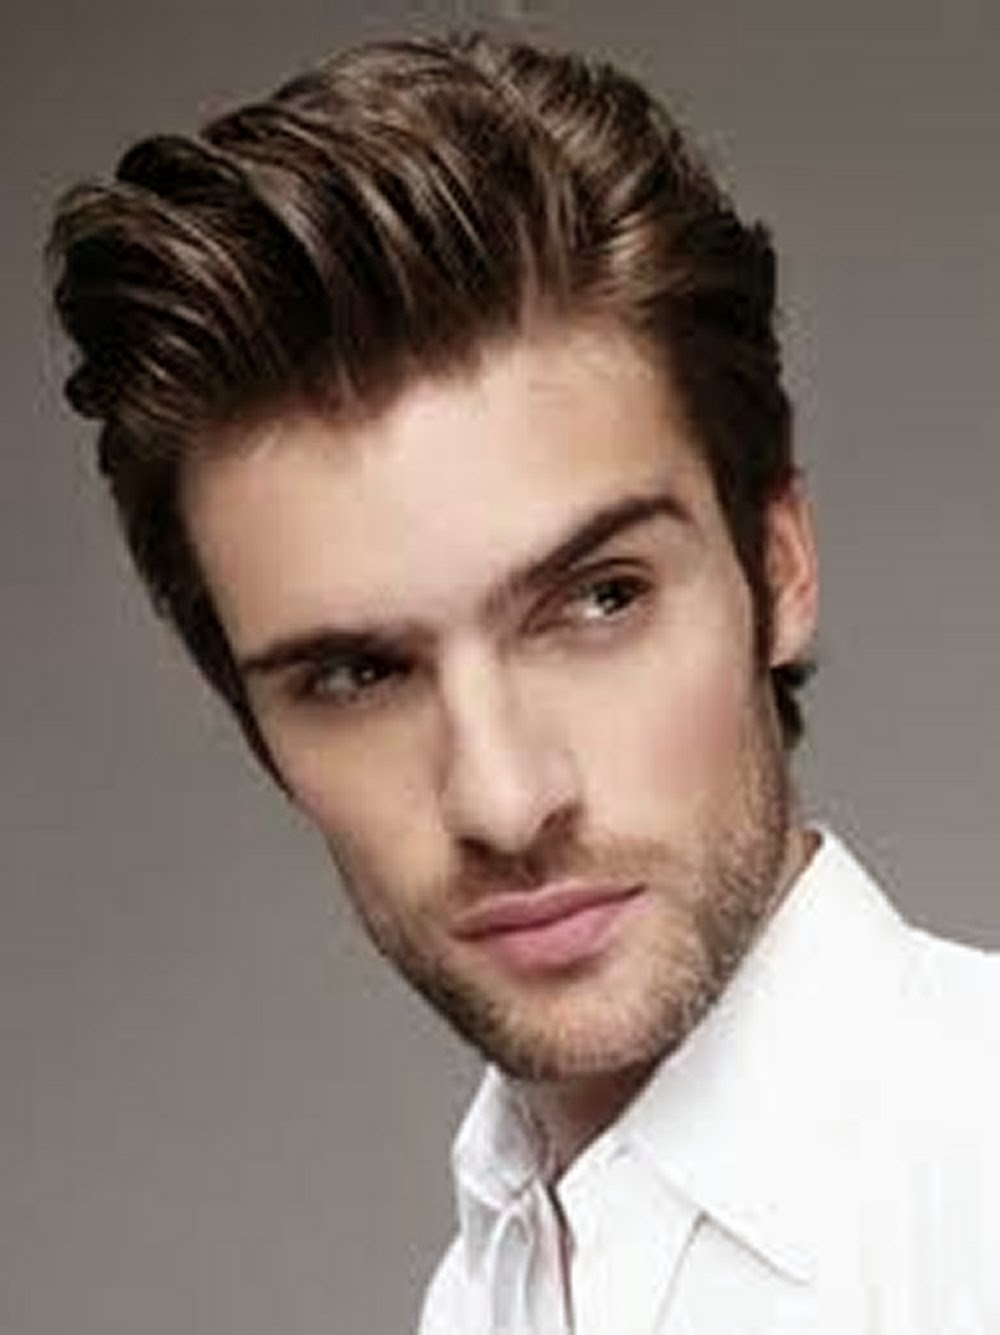 Awe Inspiring 2014 Trendy Haircuts For Men Latest Hairstyles Short Hairstyles Gunalazisus